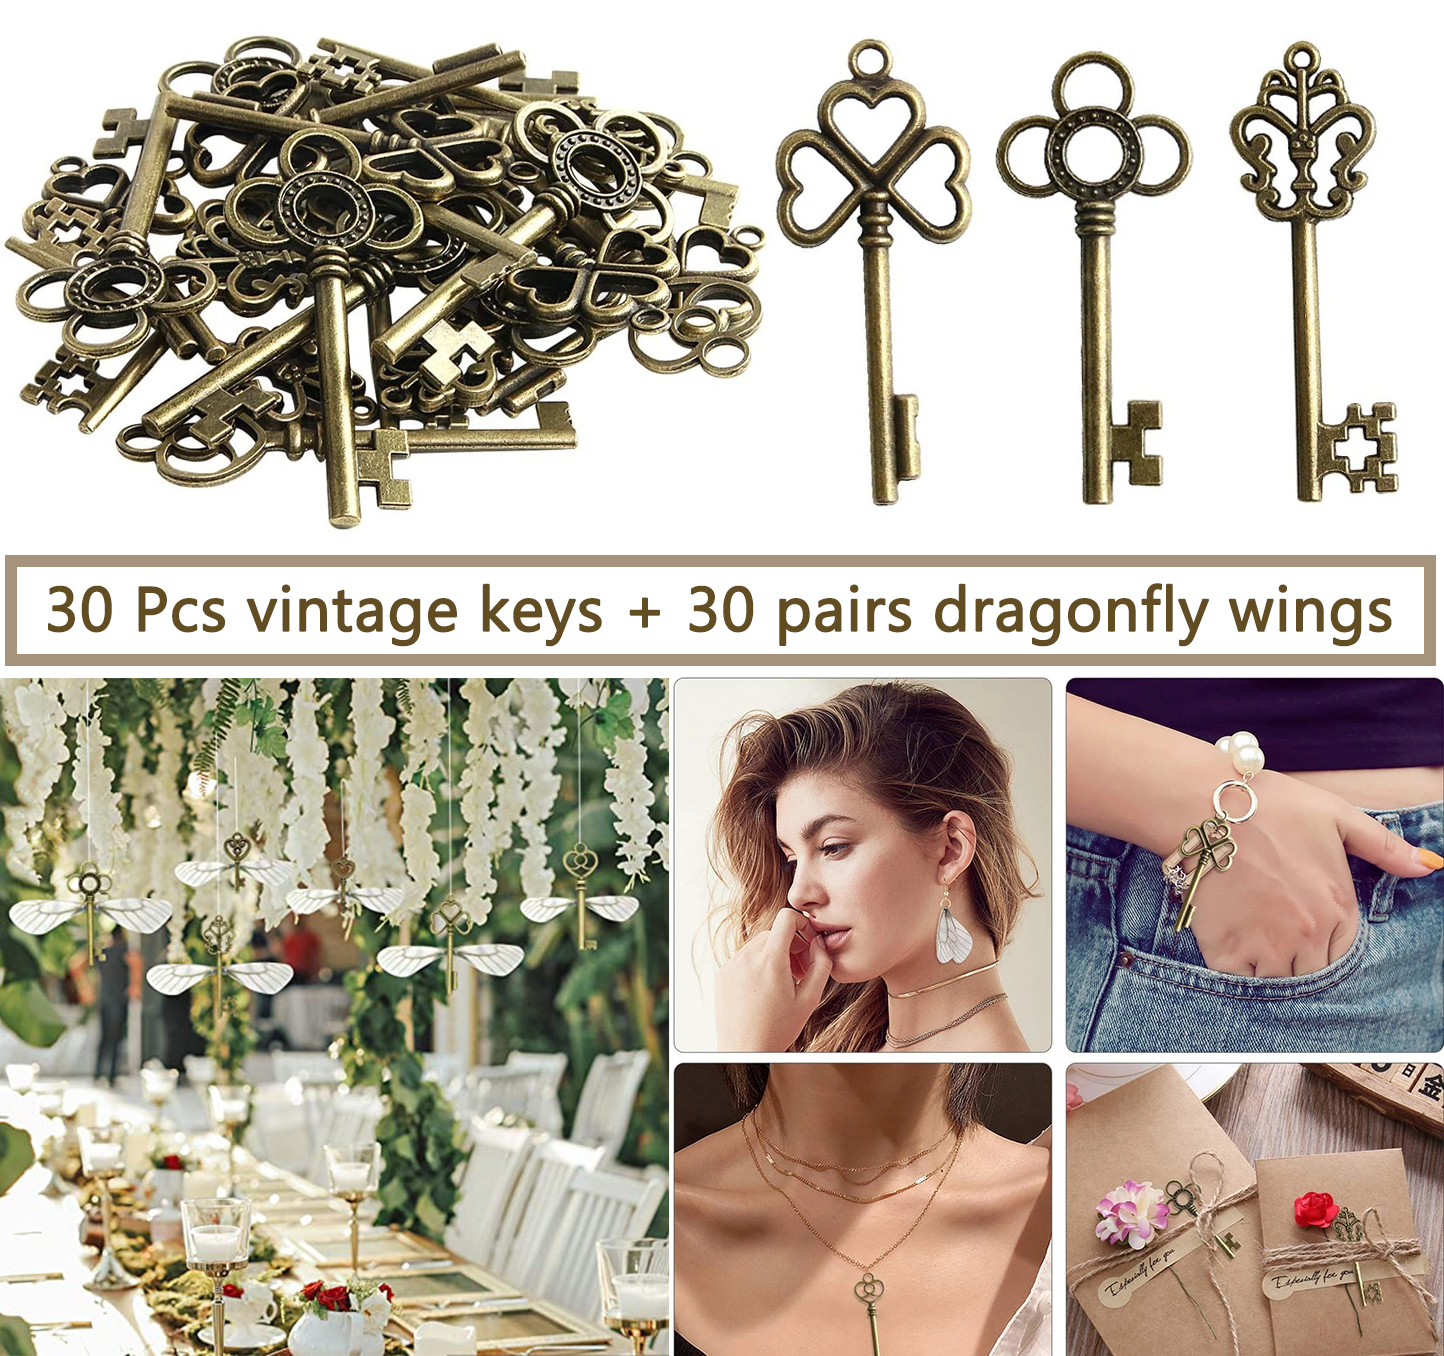 30Pcs Flying Keys DIY Handmade Accessories with Dragonfly Wing Charms Vintage Bronze Skeleton Key Party Wedding Favors Supplies